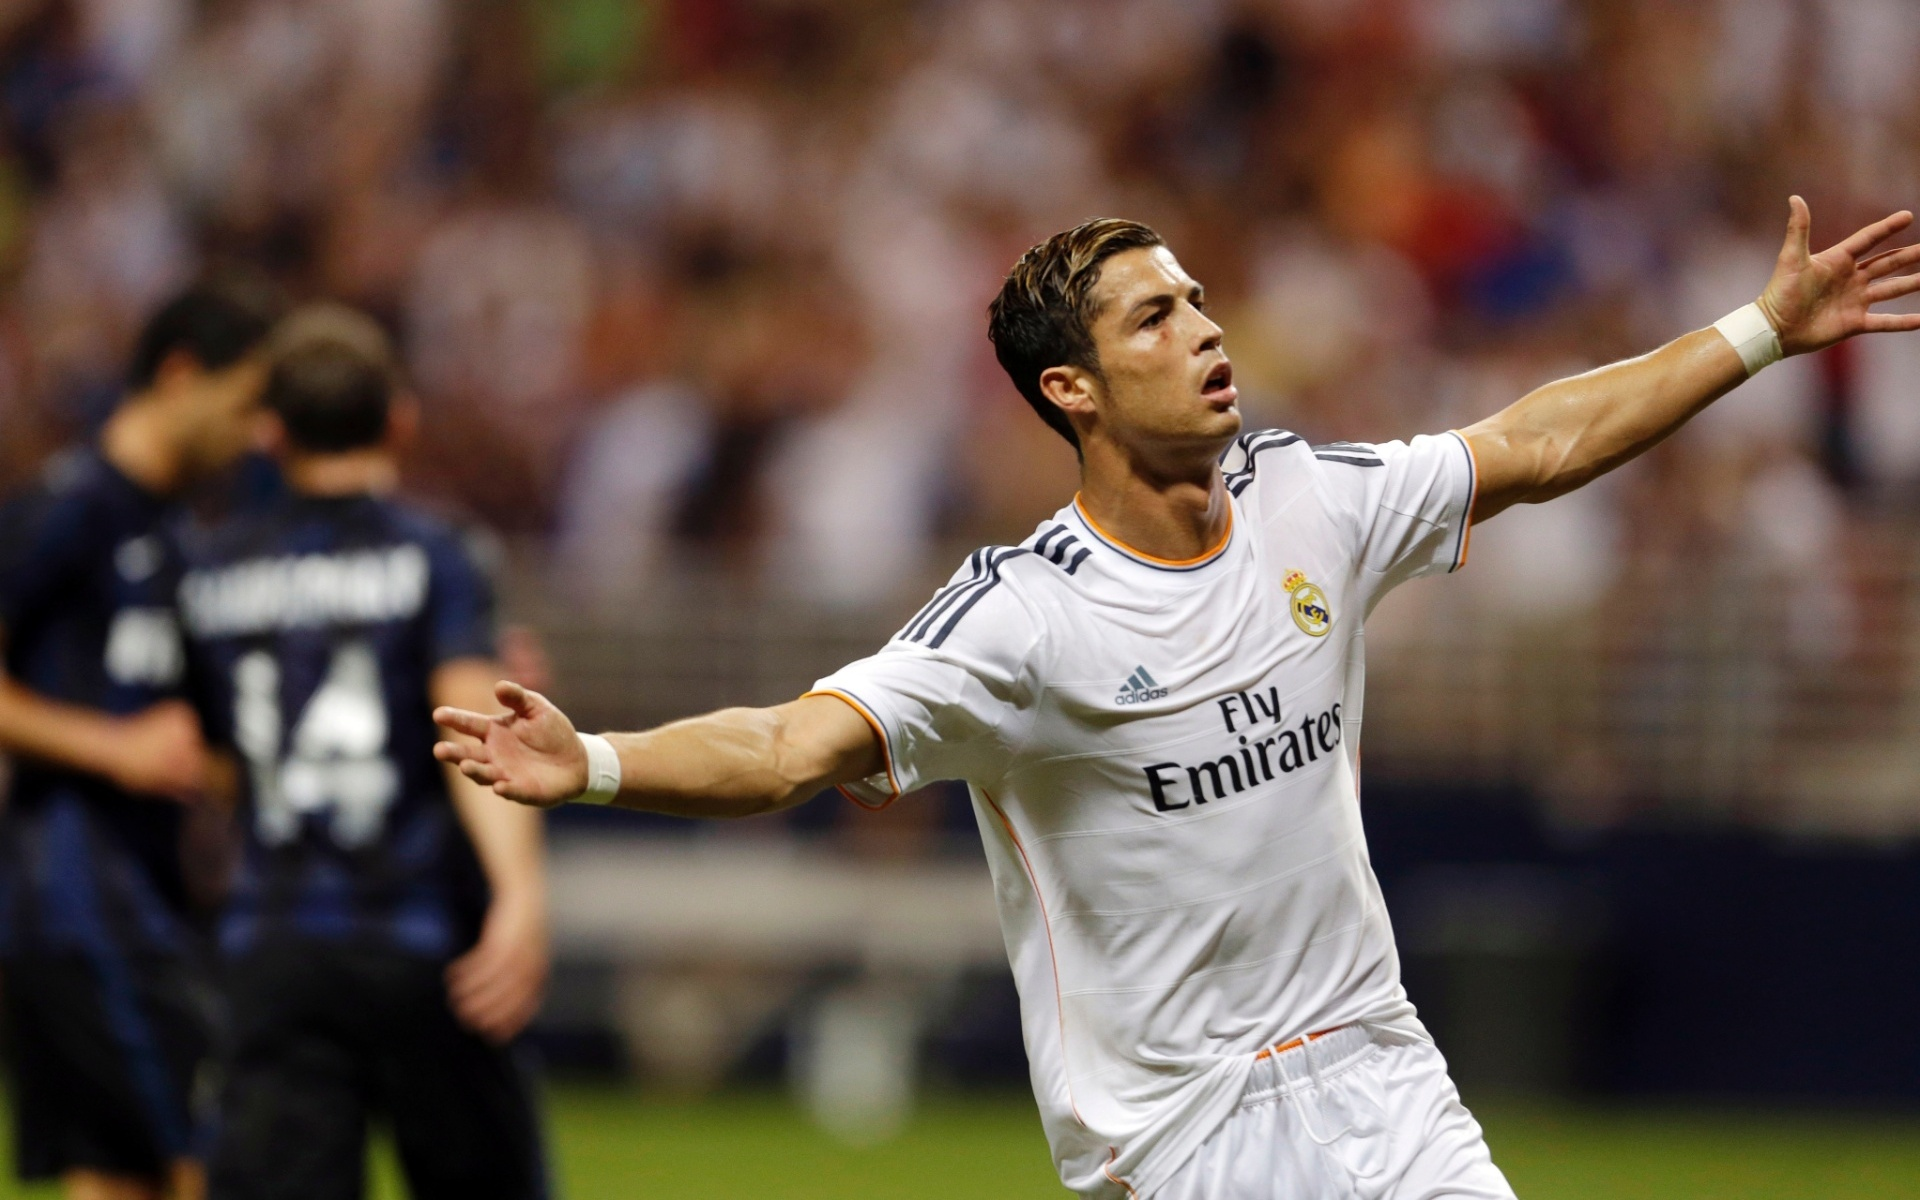 Cristiano Ronaldo 2014 Wallpapers Cristiano Ronaldo 2014 Wallpapers ...